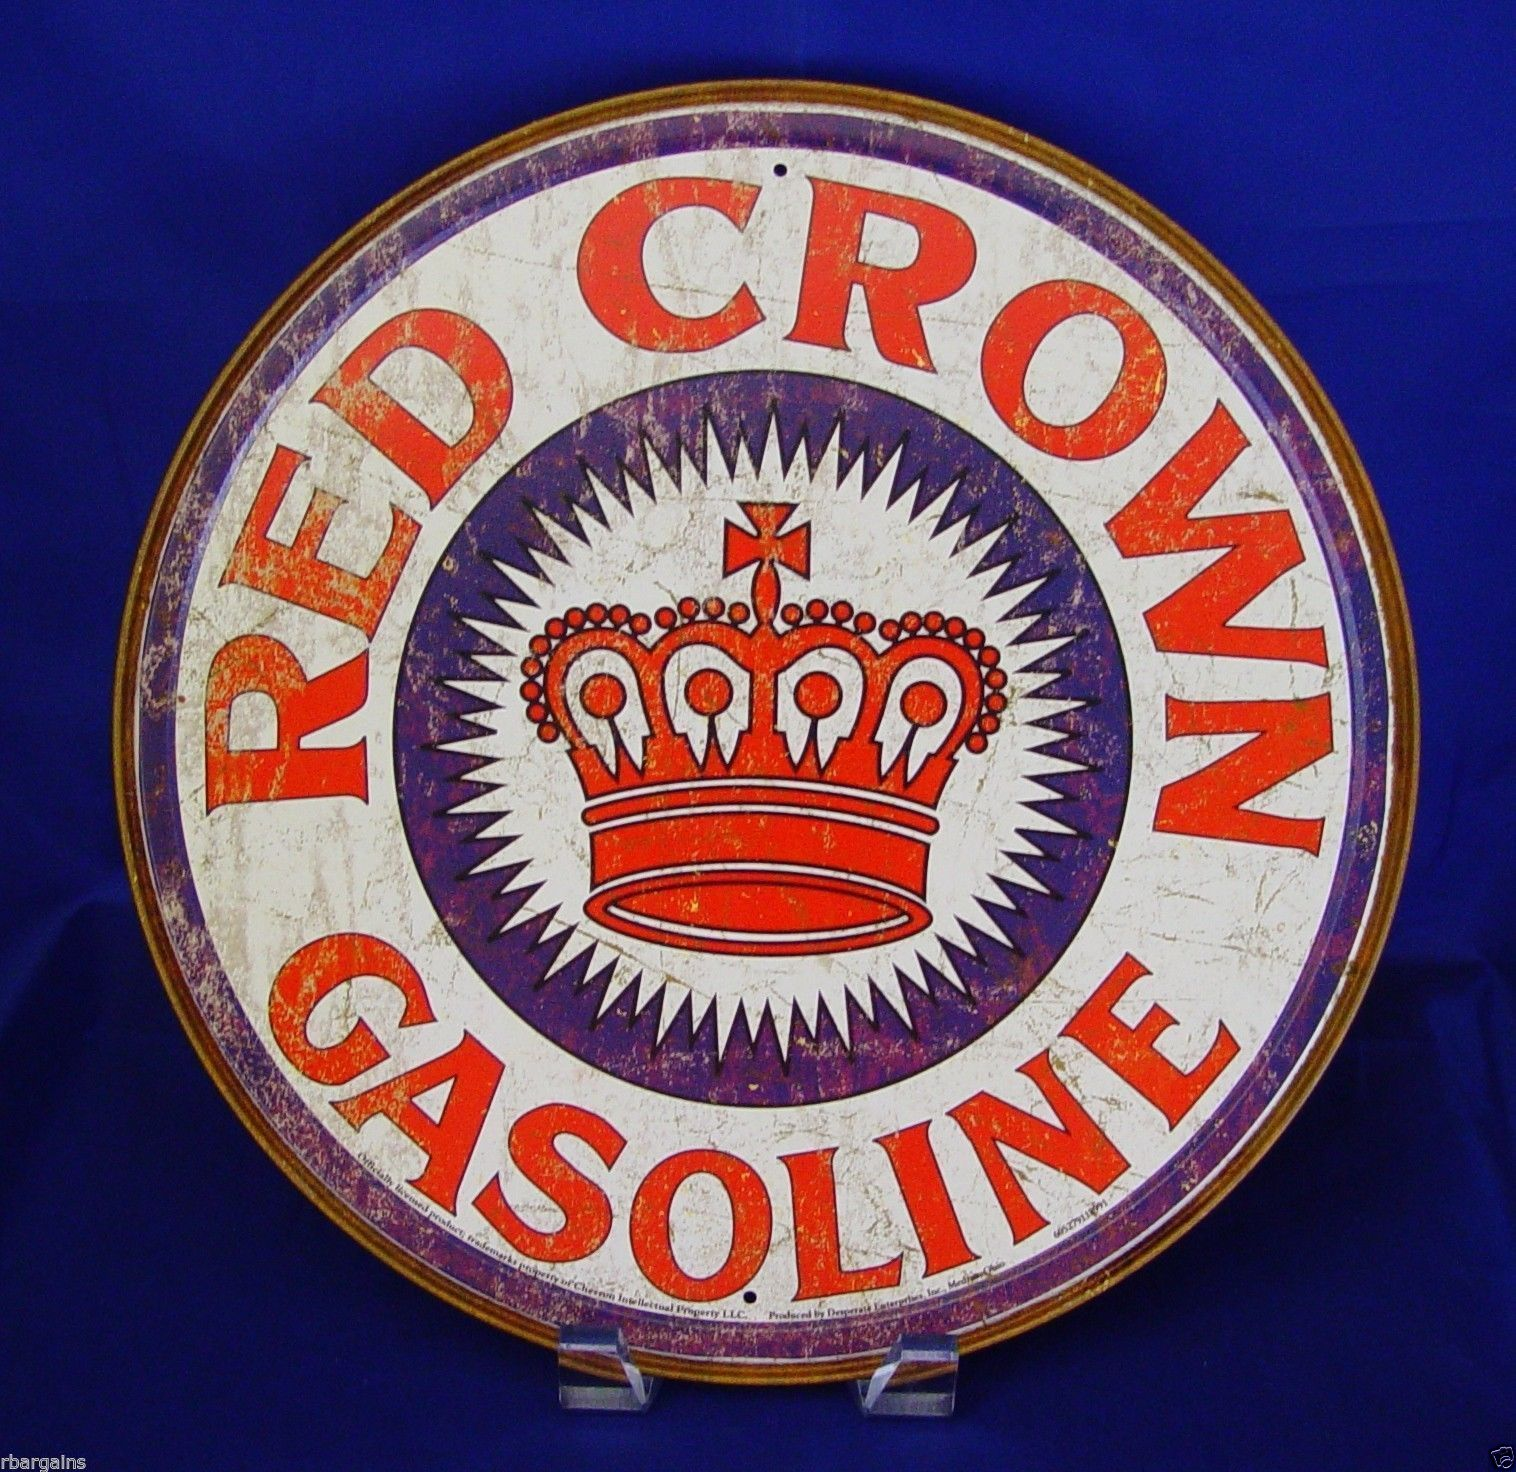 red crown logos